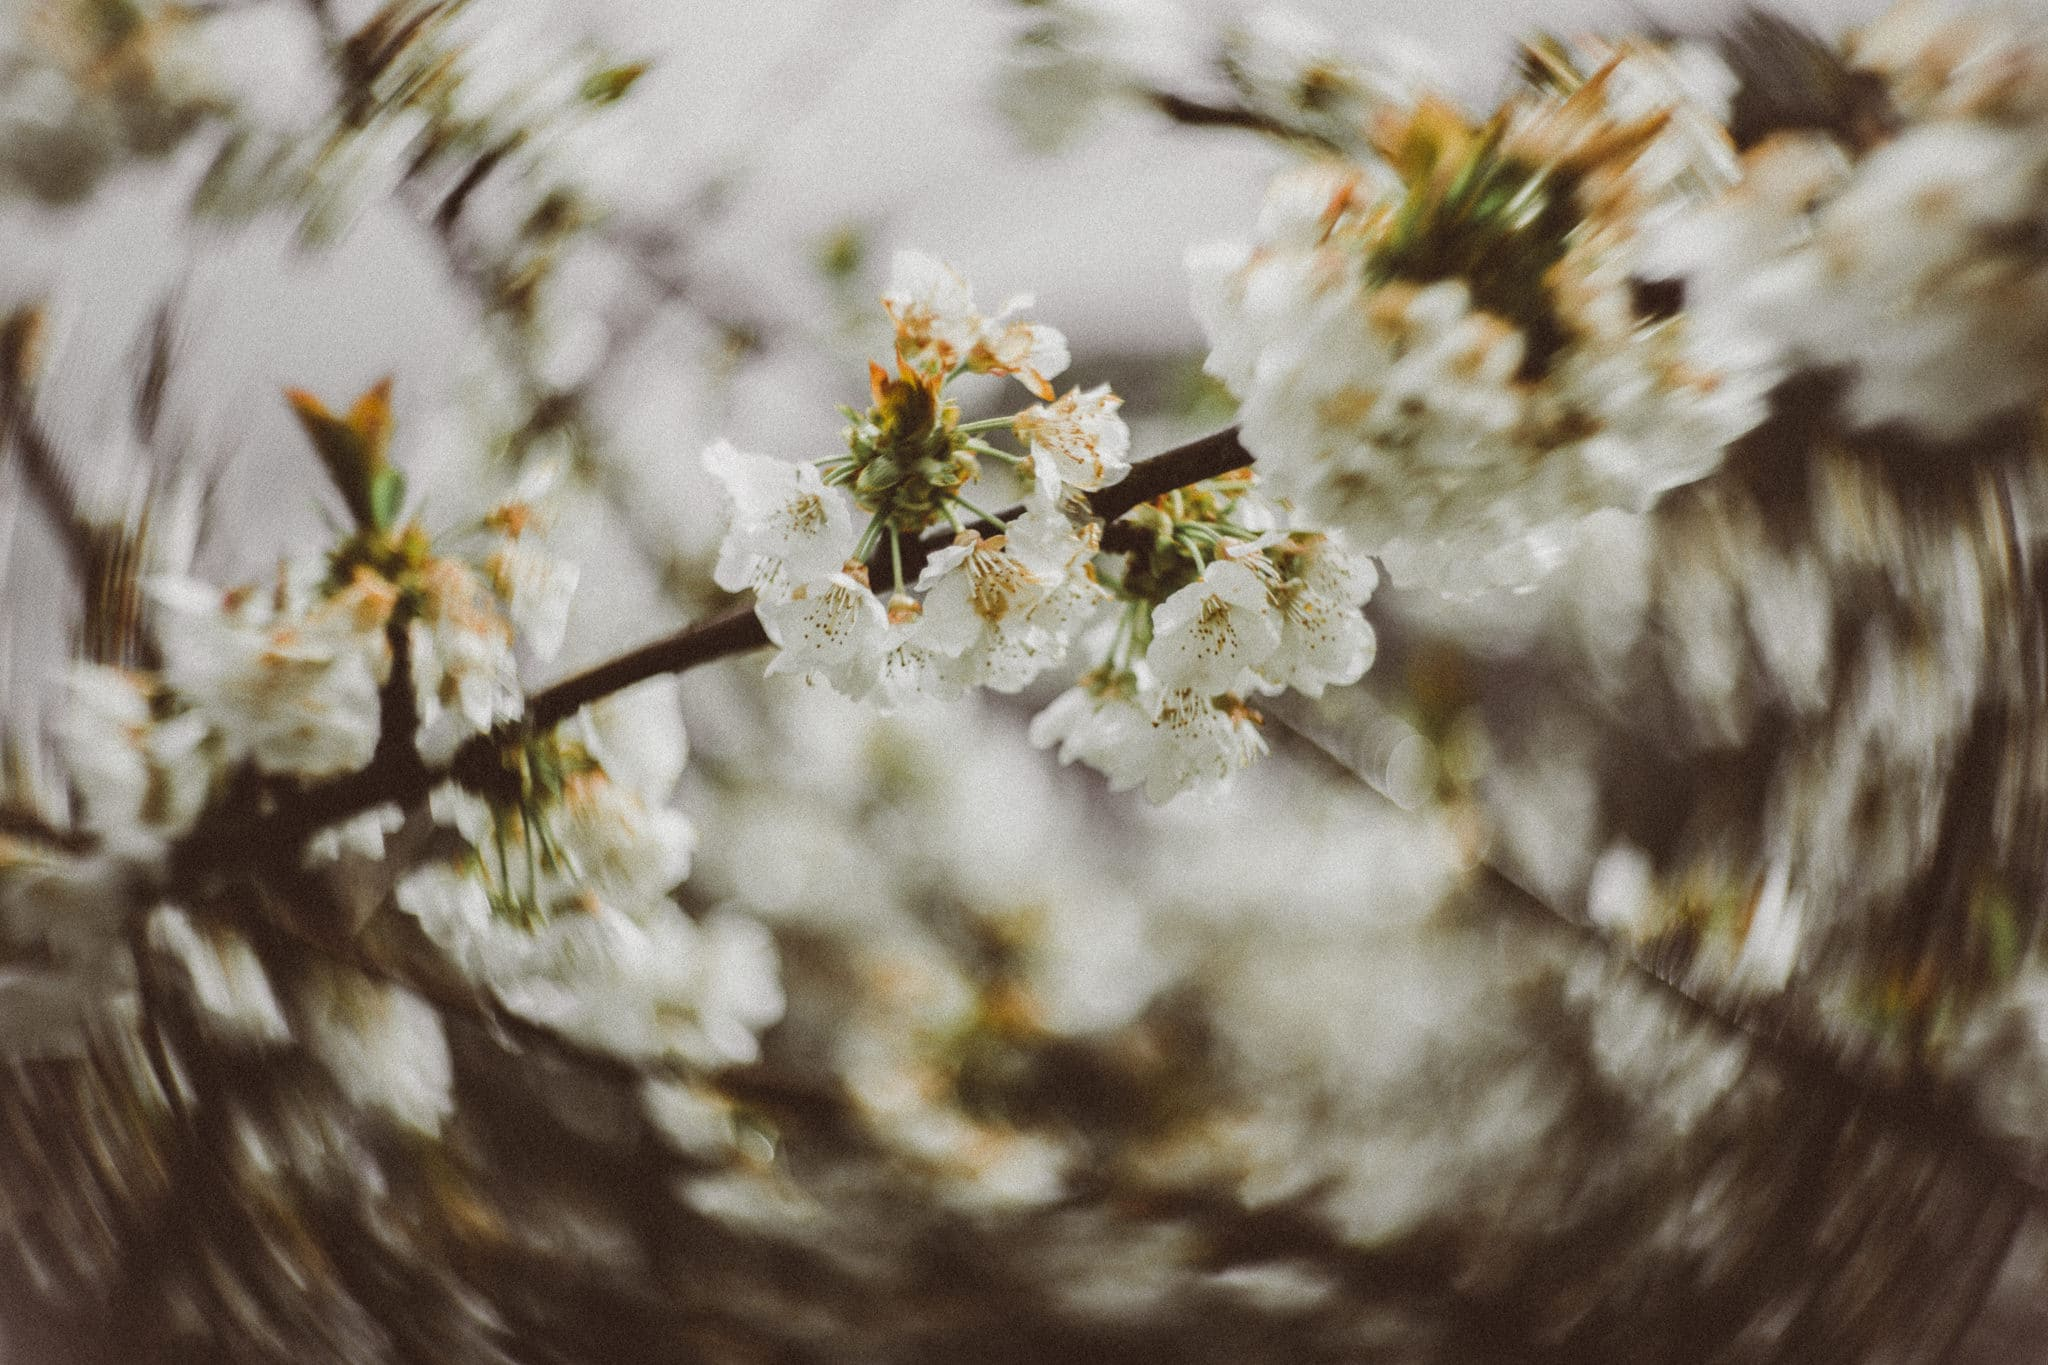 crazy bokeh created by art lenses - cherry blossom photos